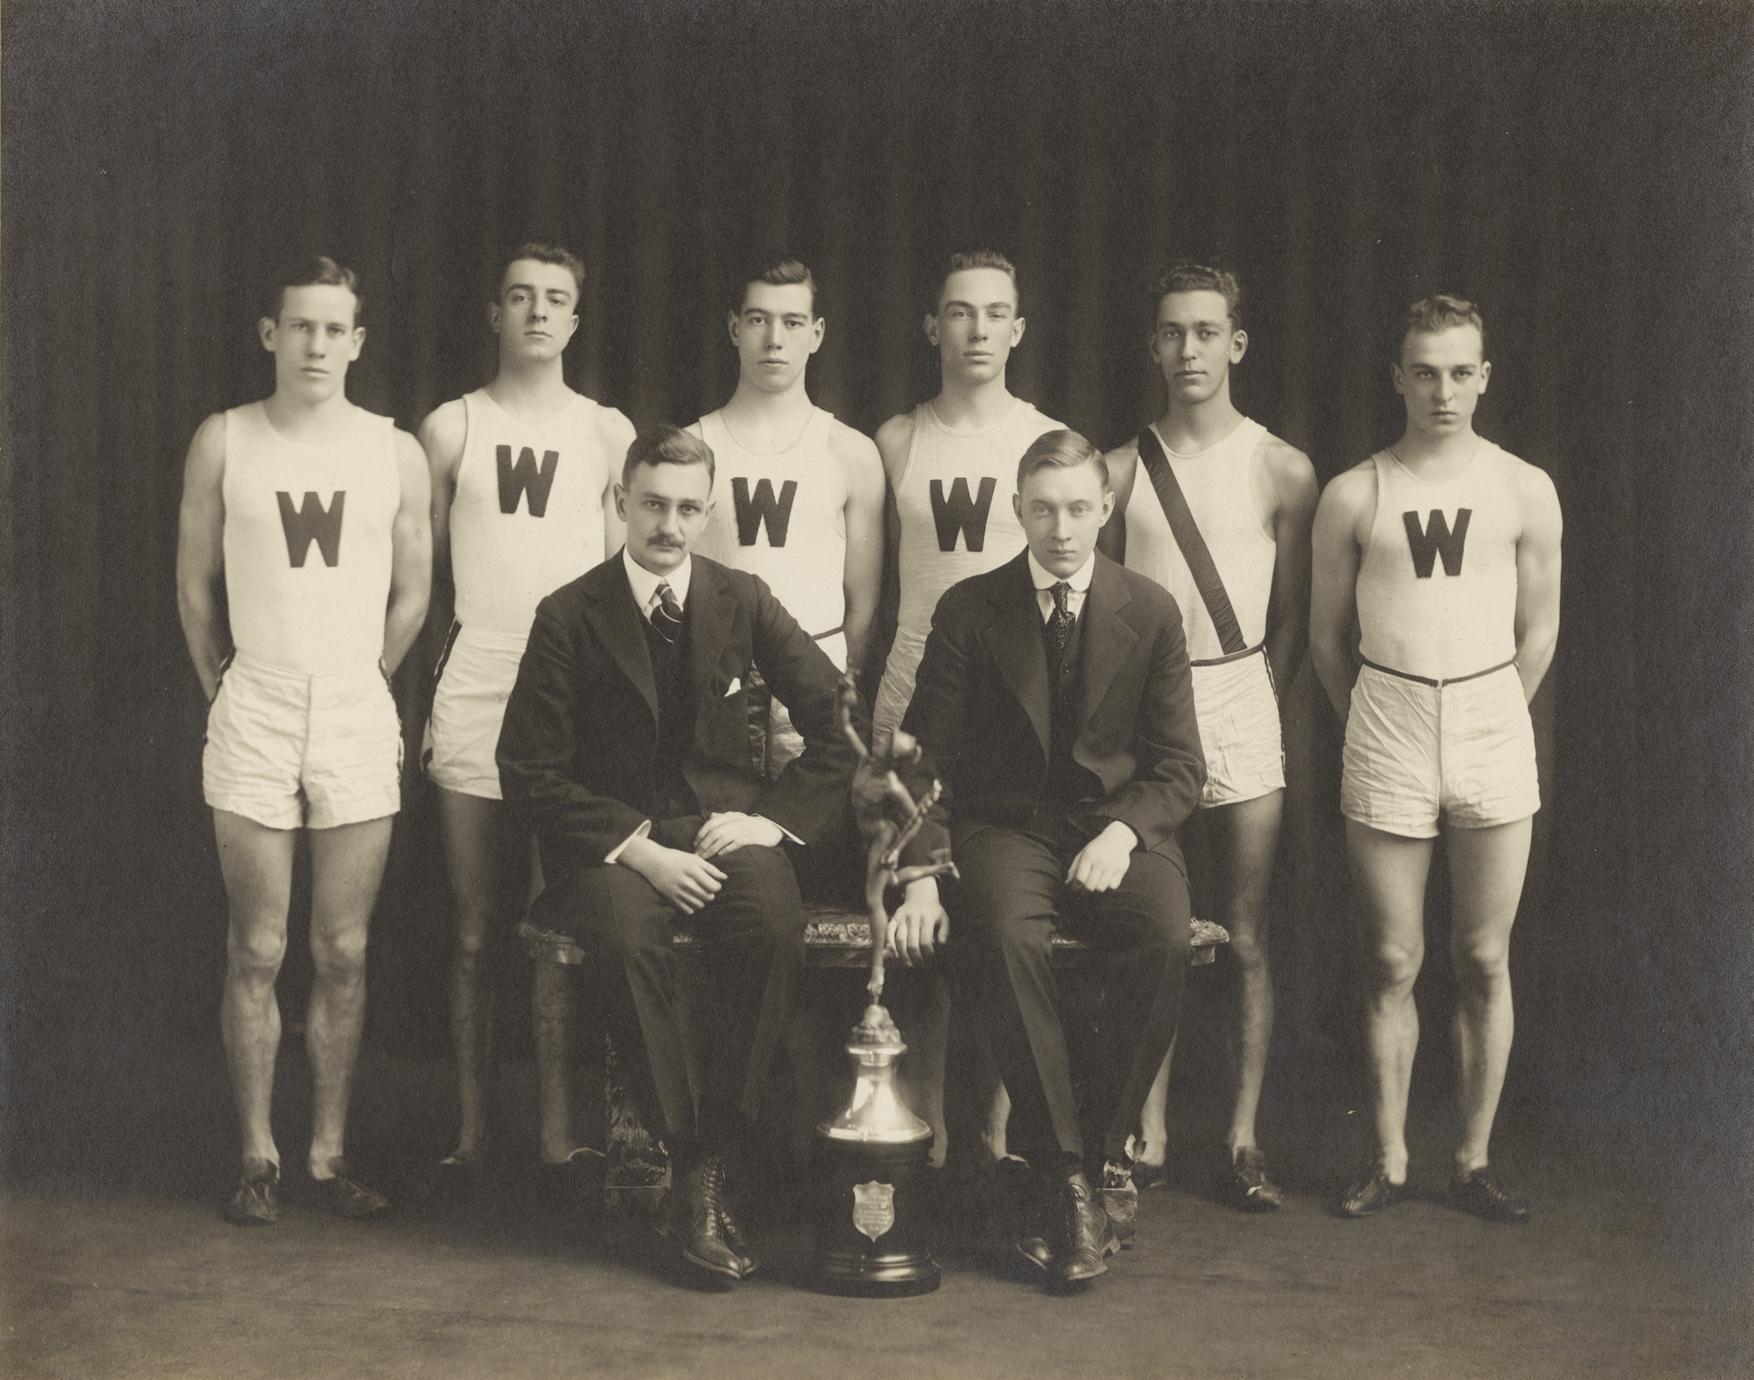 Cross country team 1915-1916